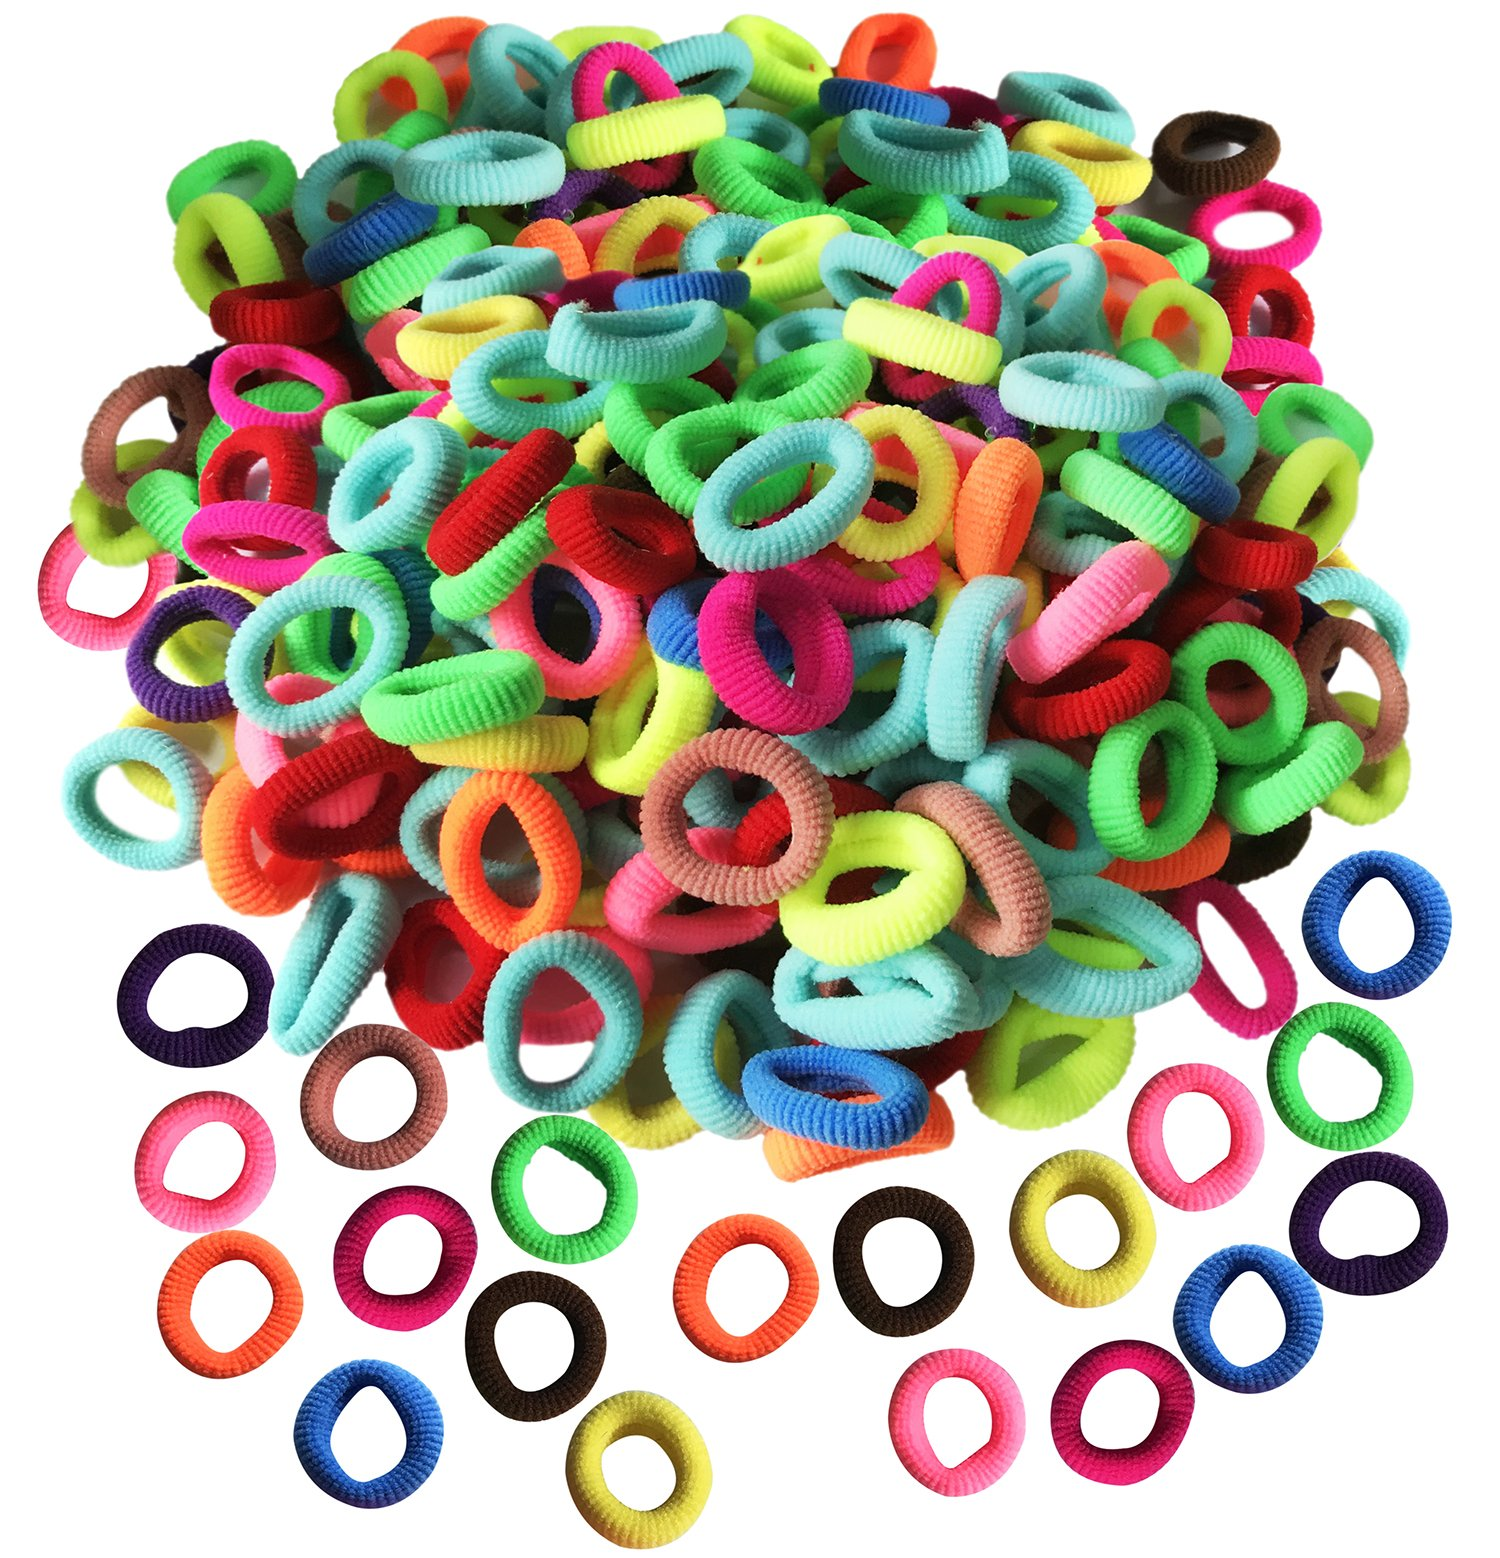 Baby Soft Hair Elastics Ties for Kids Toddlers Colorful Small Seamless Hair  Ponytail Holder(200 688d8f18e5c